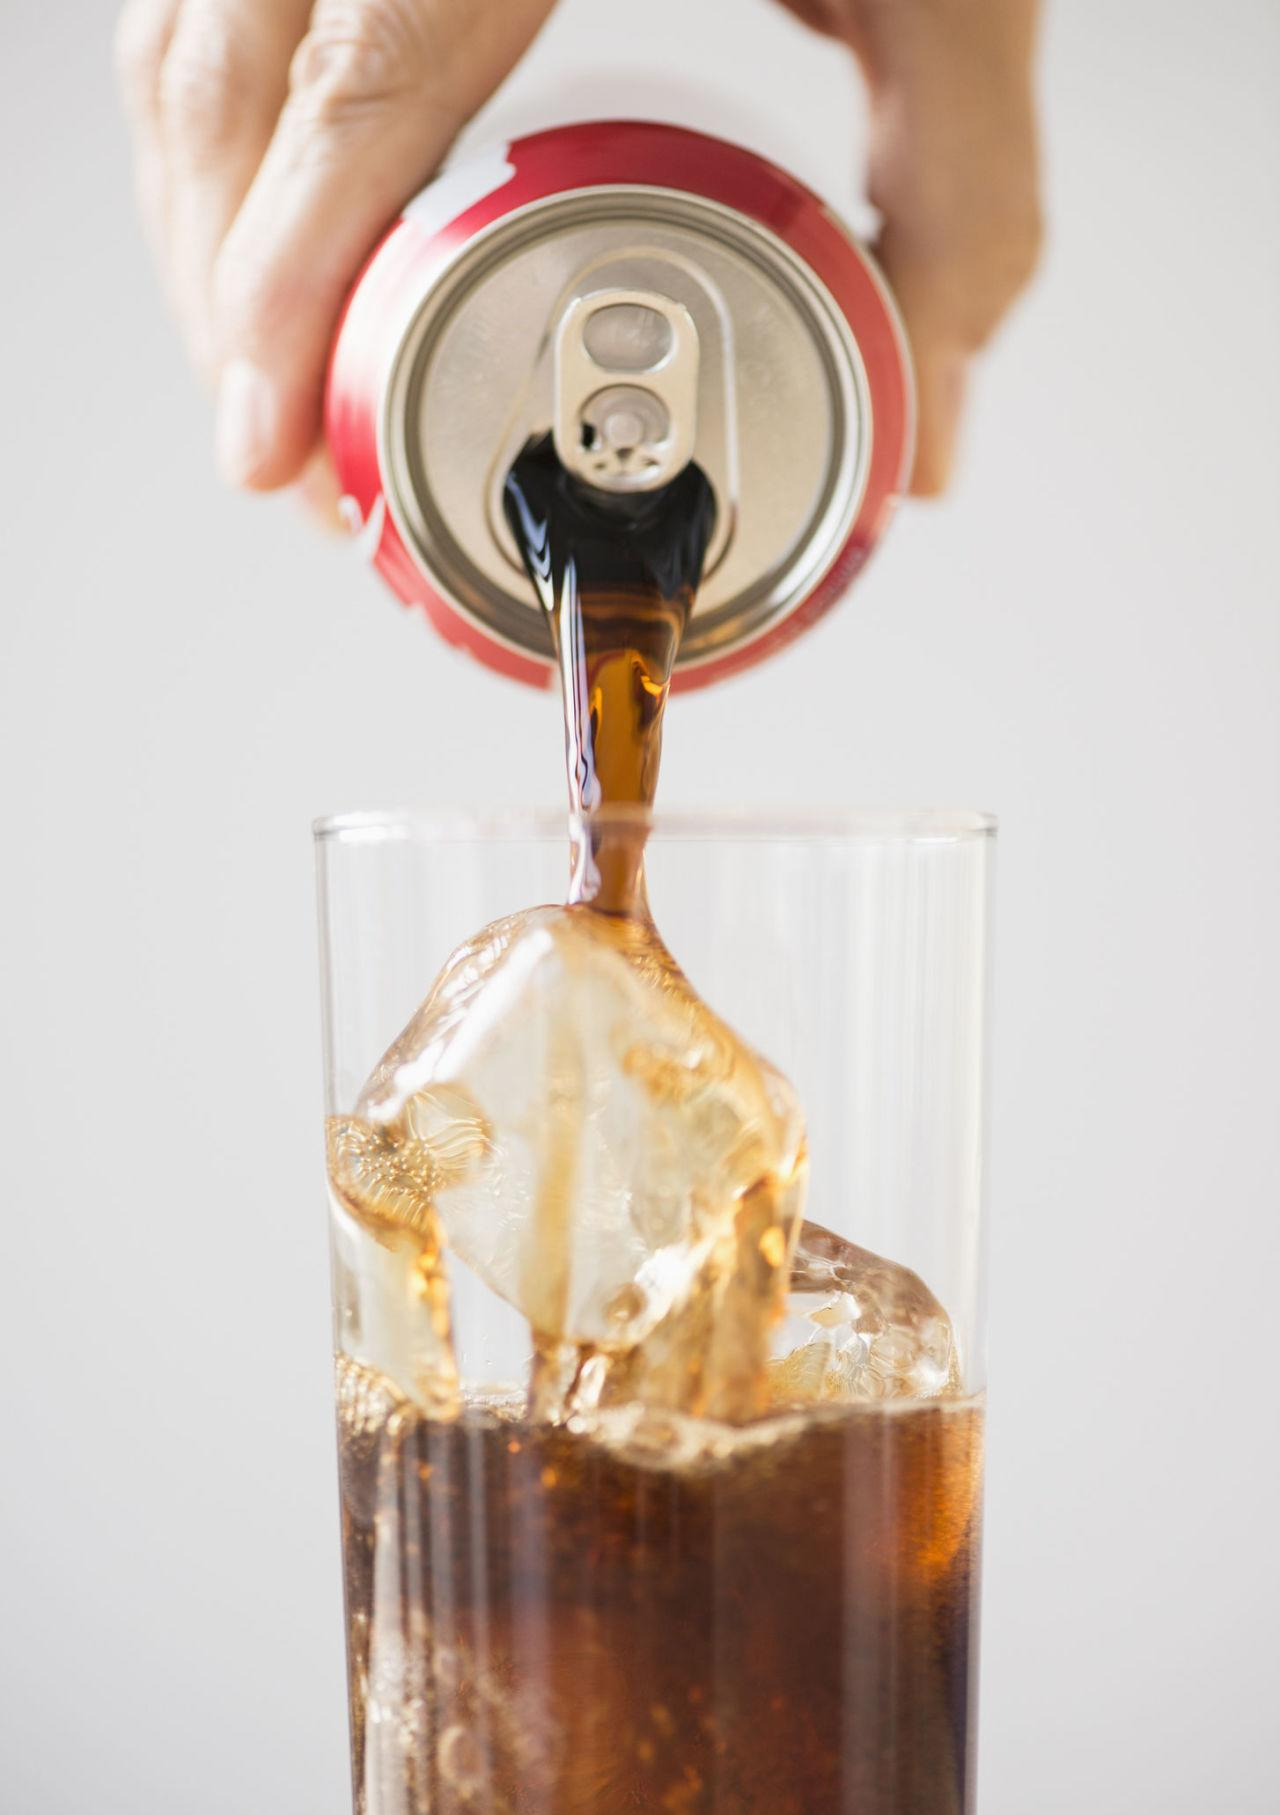 <p>The sugar in soda gets a bad rap, but the carb count is just as bad: One can of Coke has 39 grams.</p>